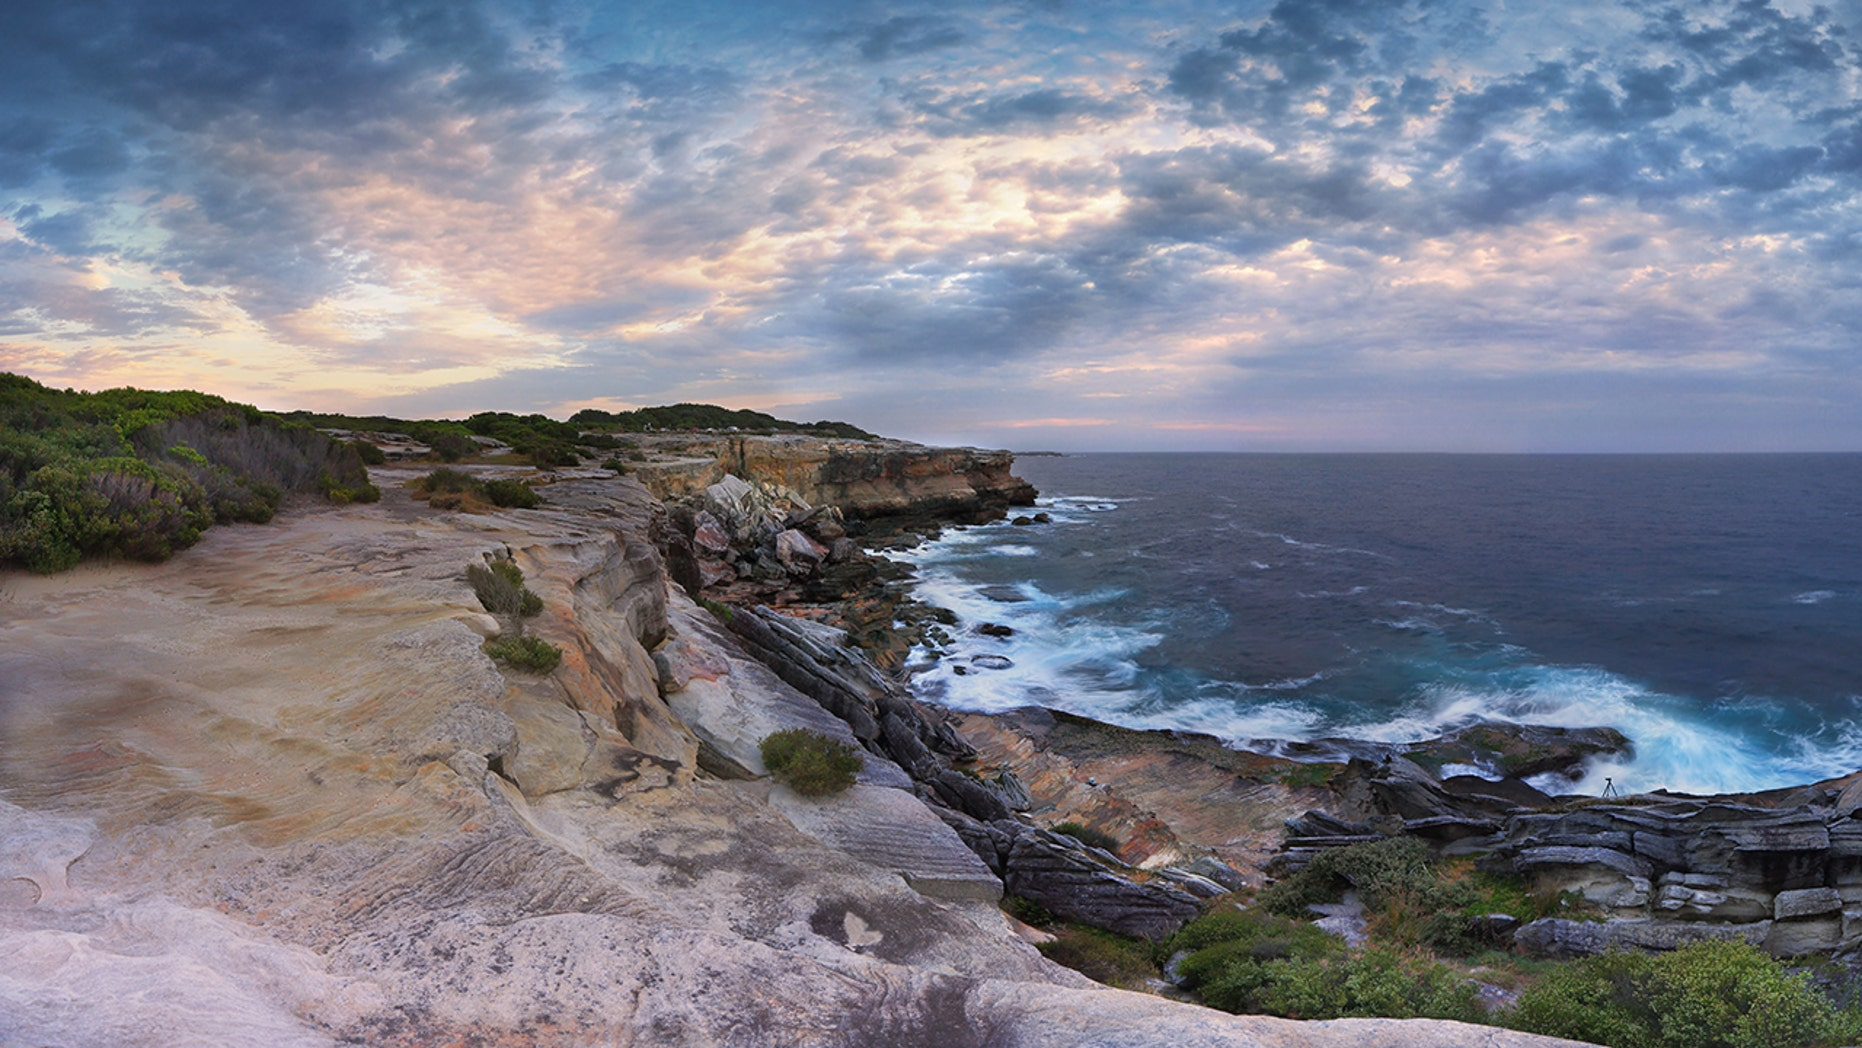 An American tourist died when he fell from a cliff on Cape Solander in Australia while taking a selfie.